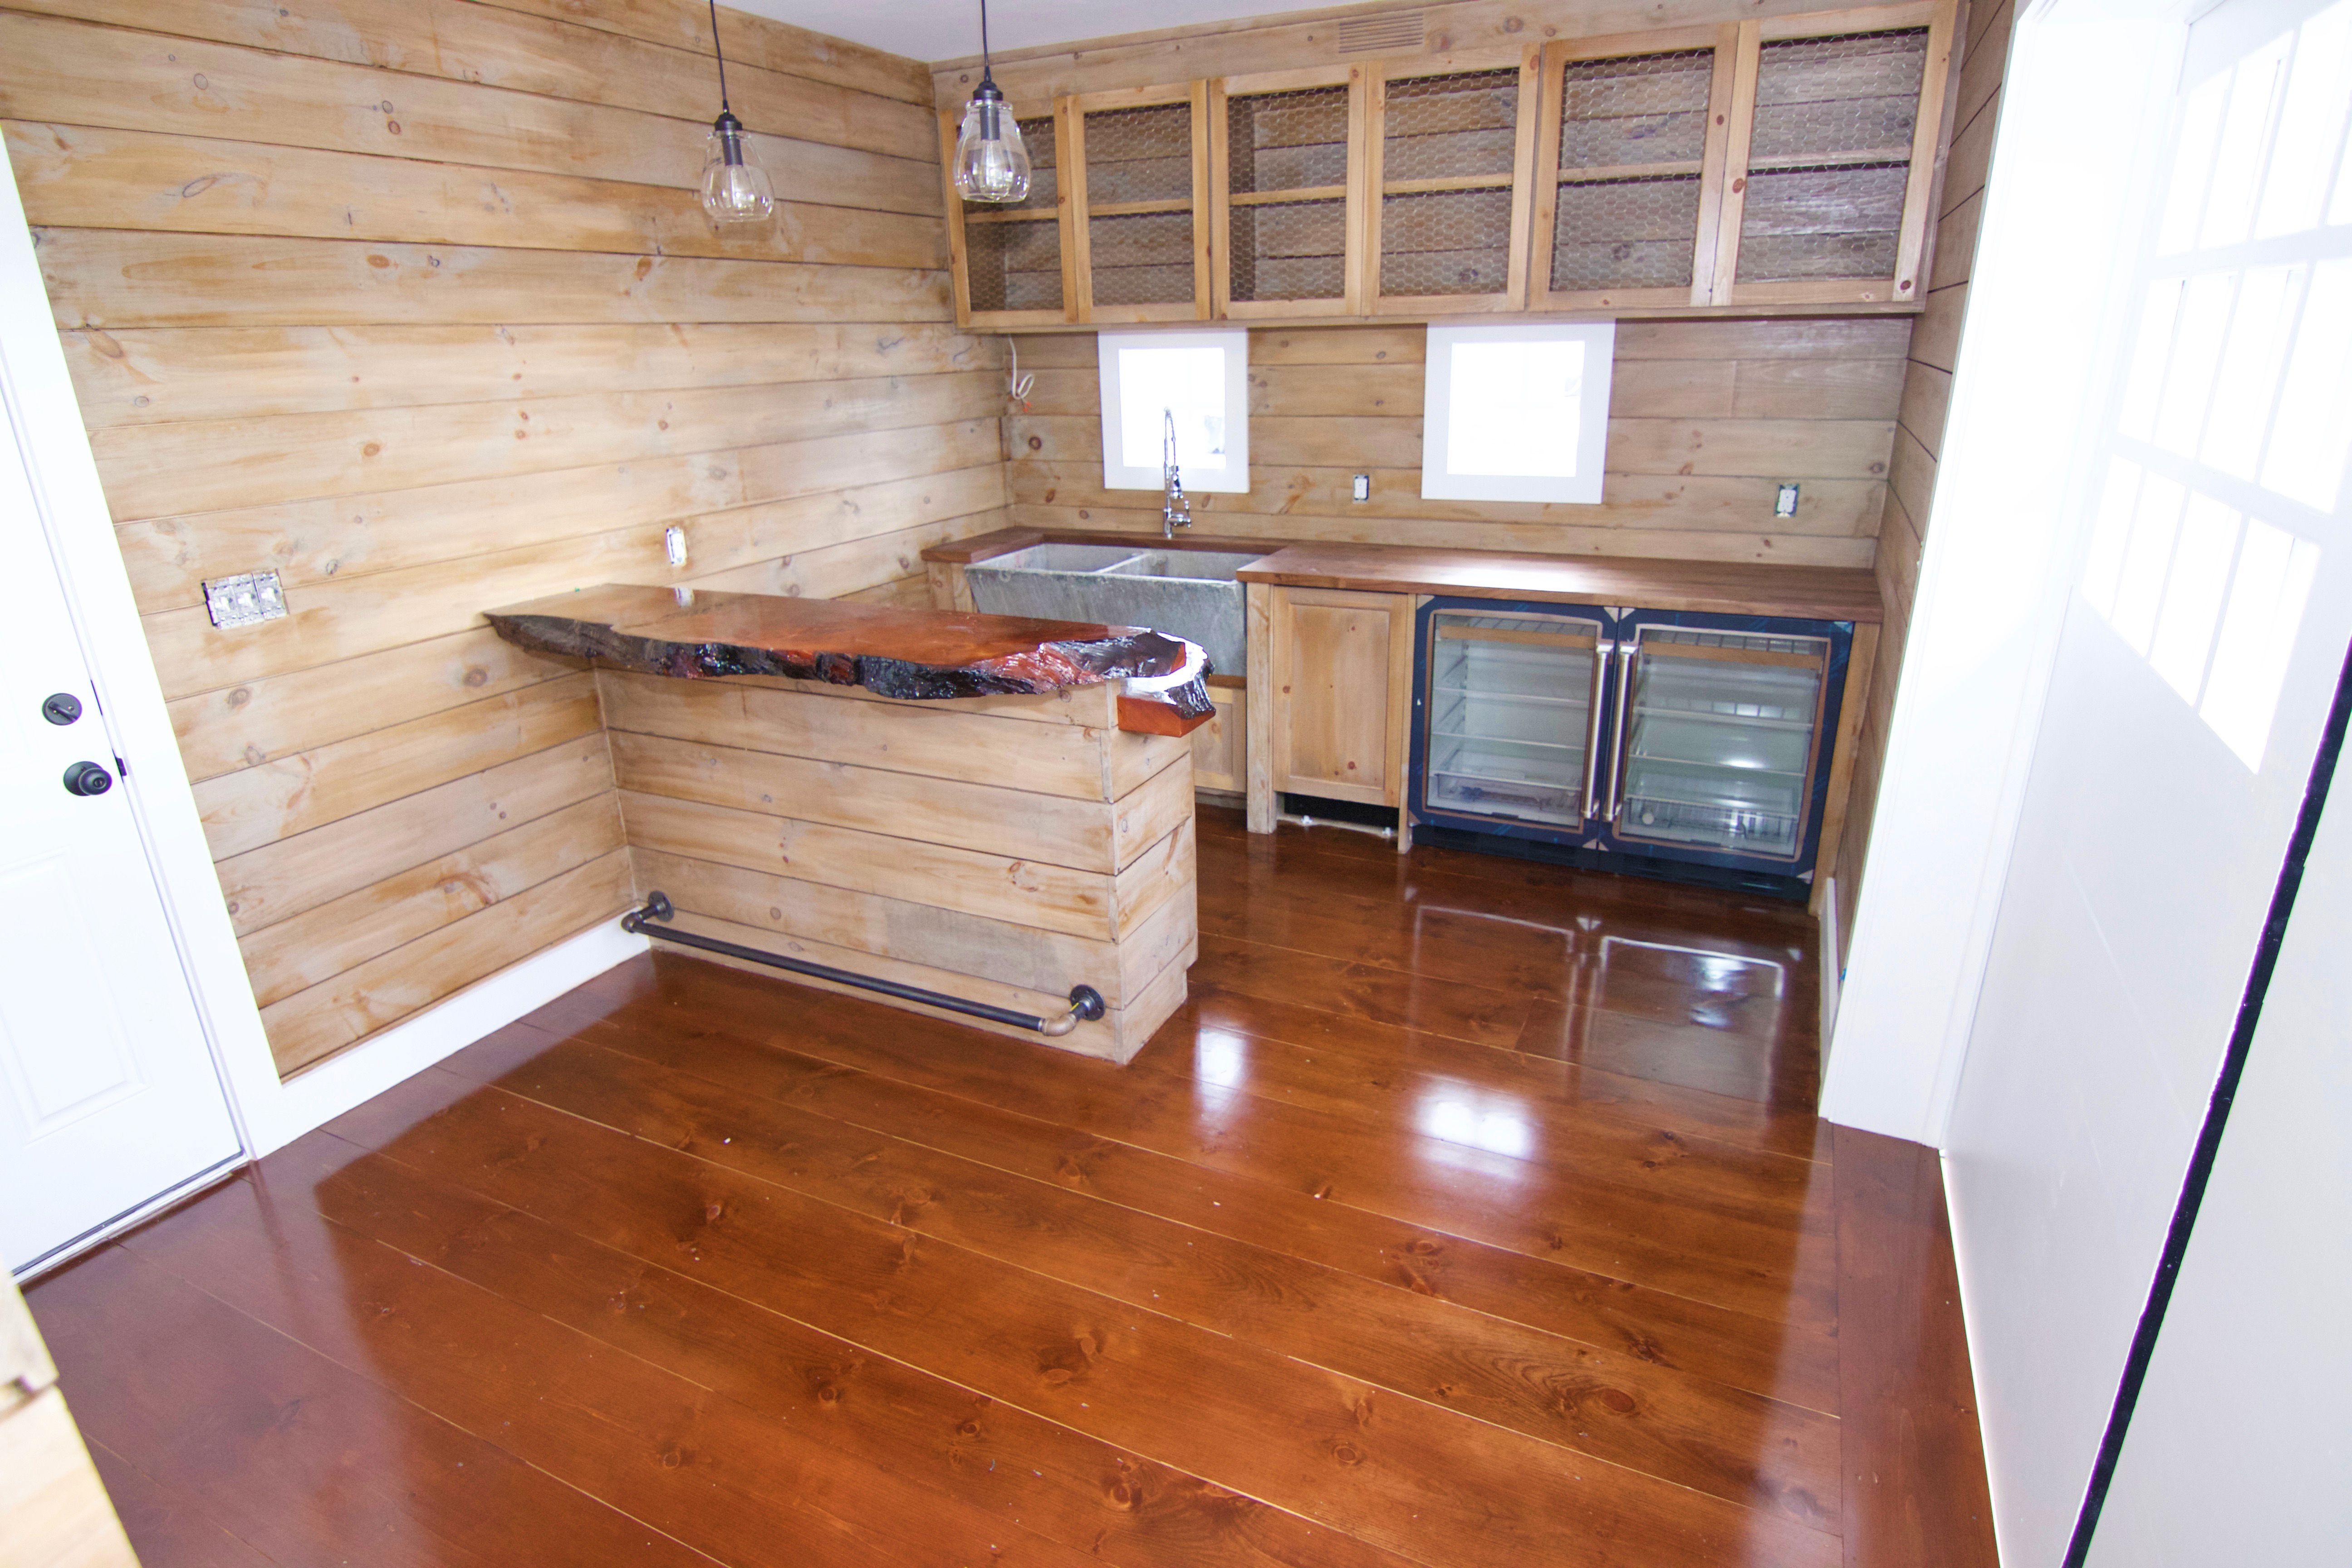 Eastern White Pine Stained With Minwax English Chestnut